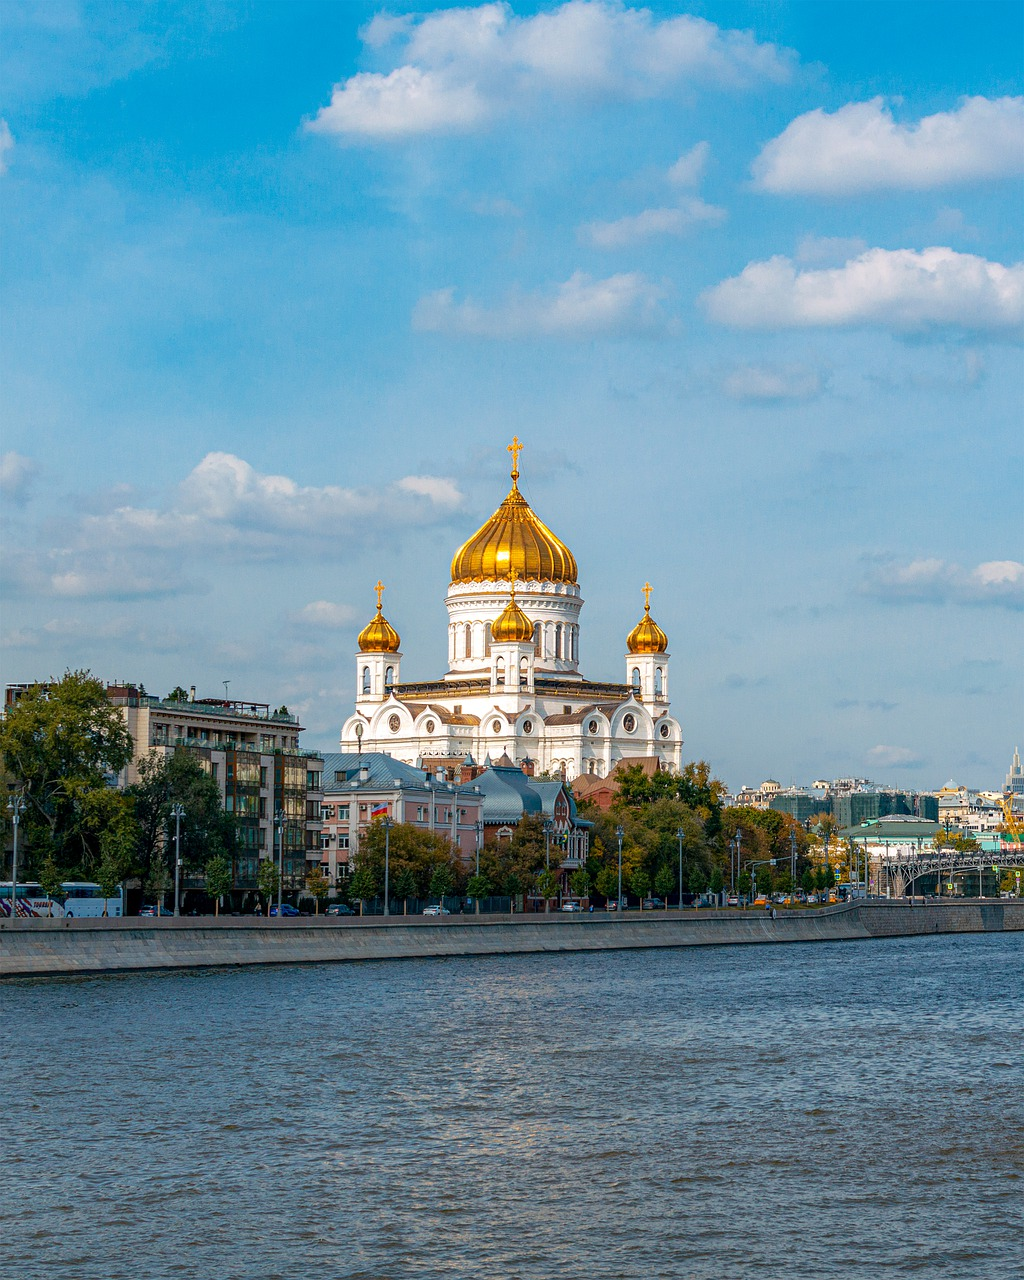 Moscow Cathedral River  - AKuptsova / Pixabay